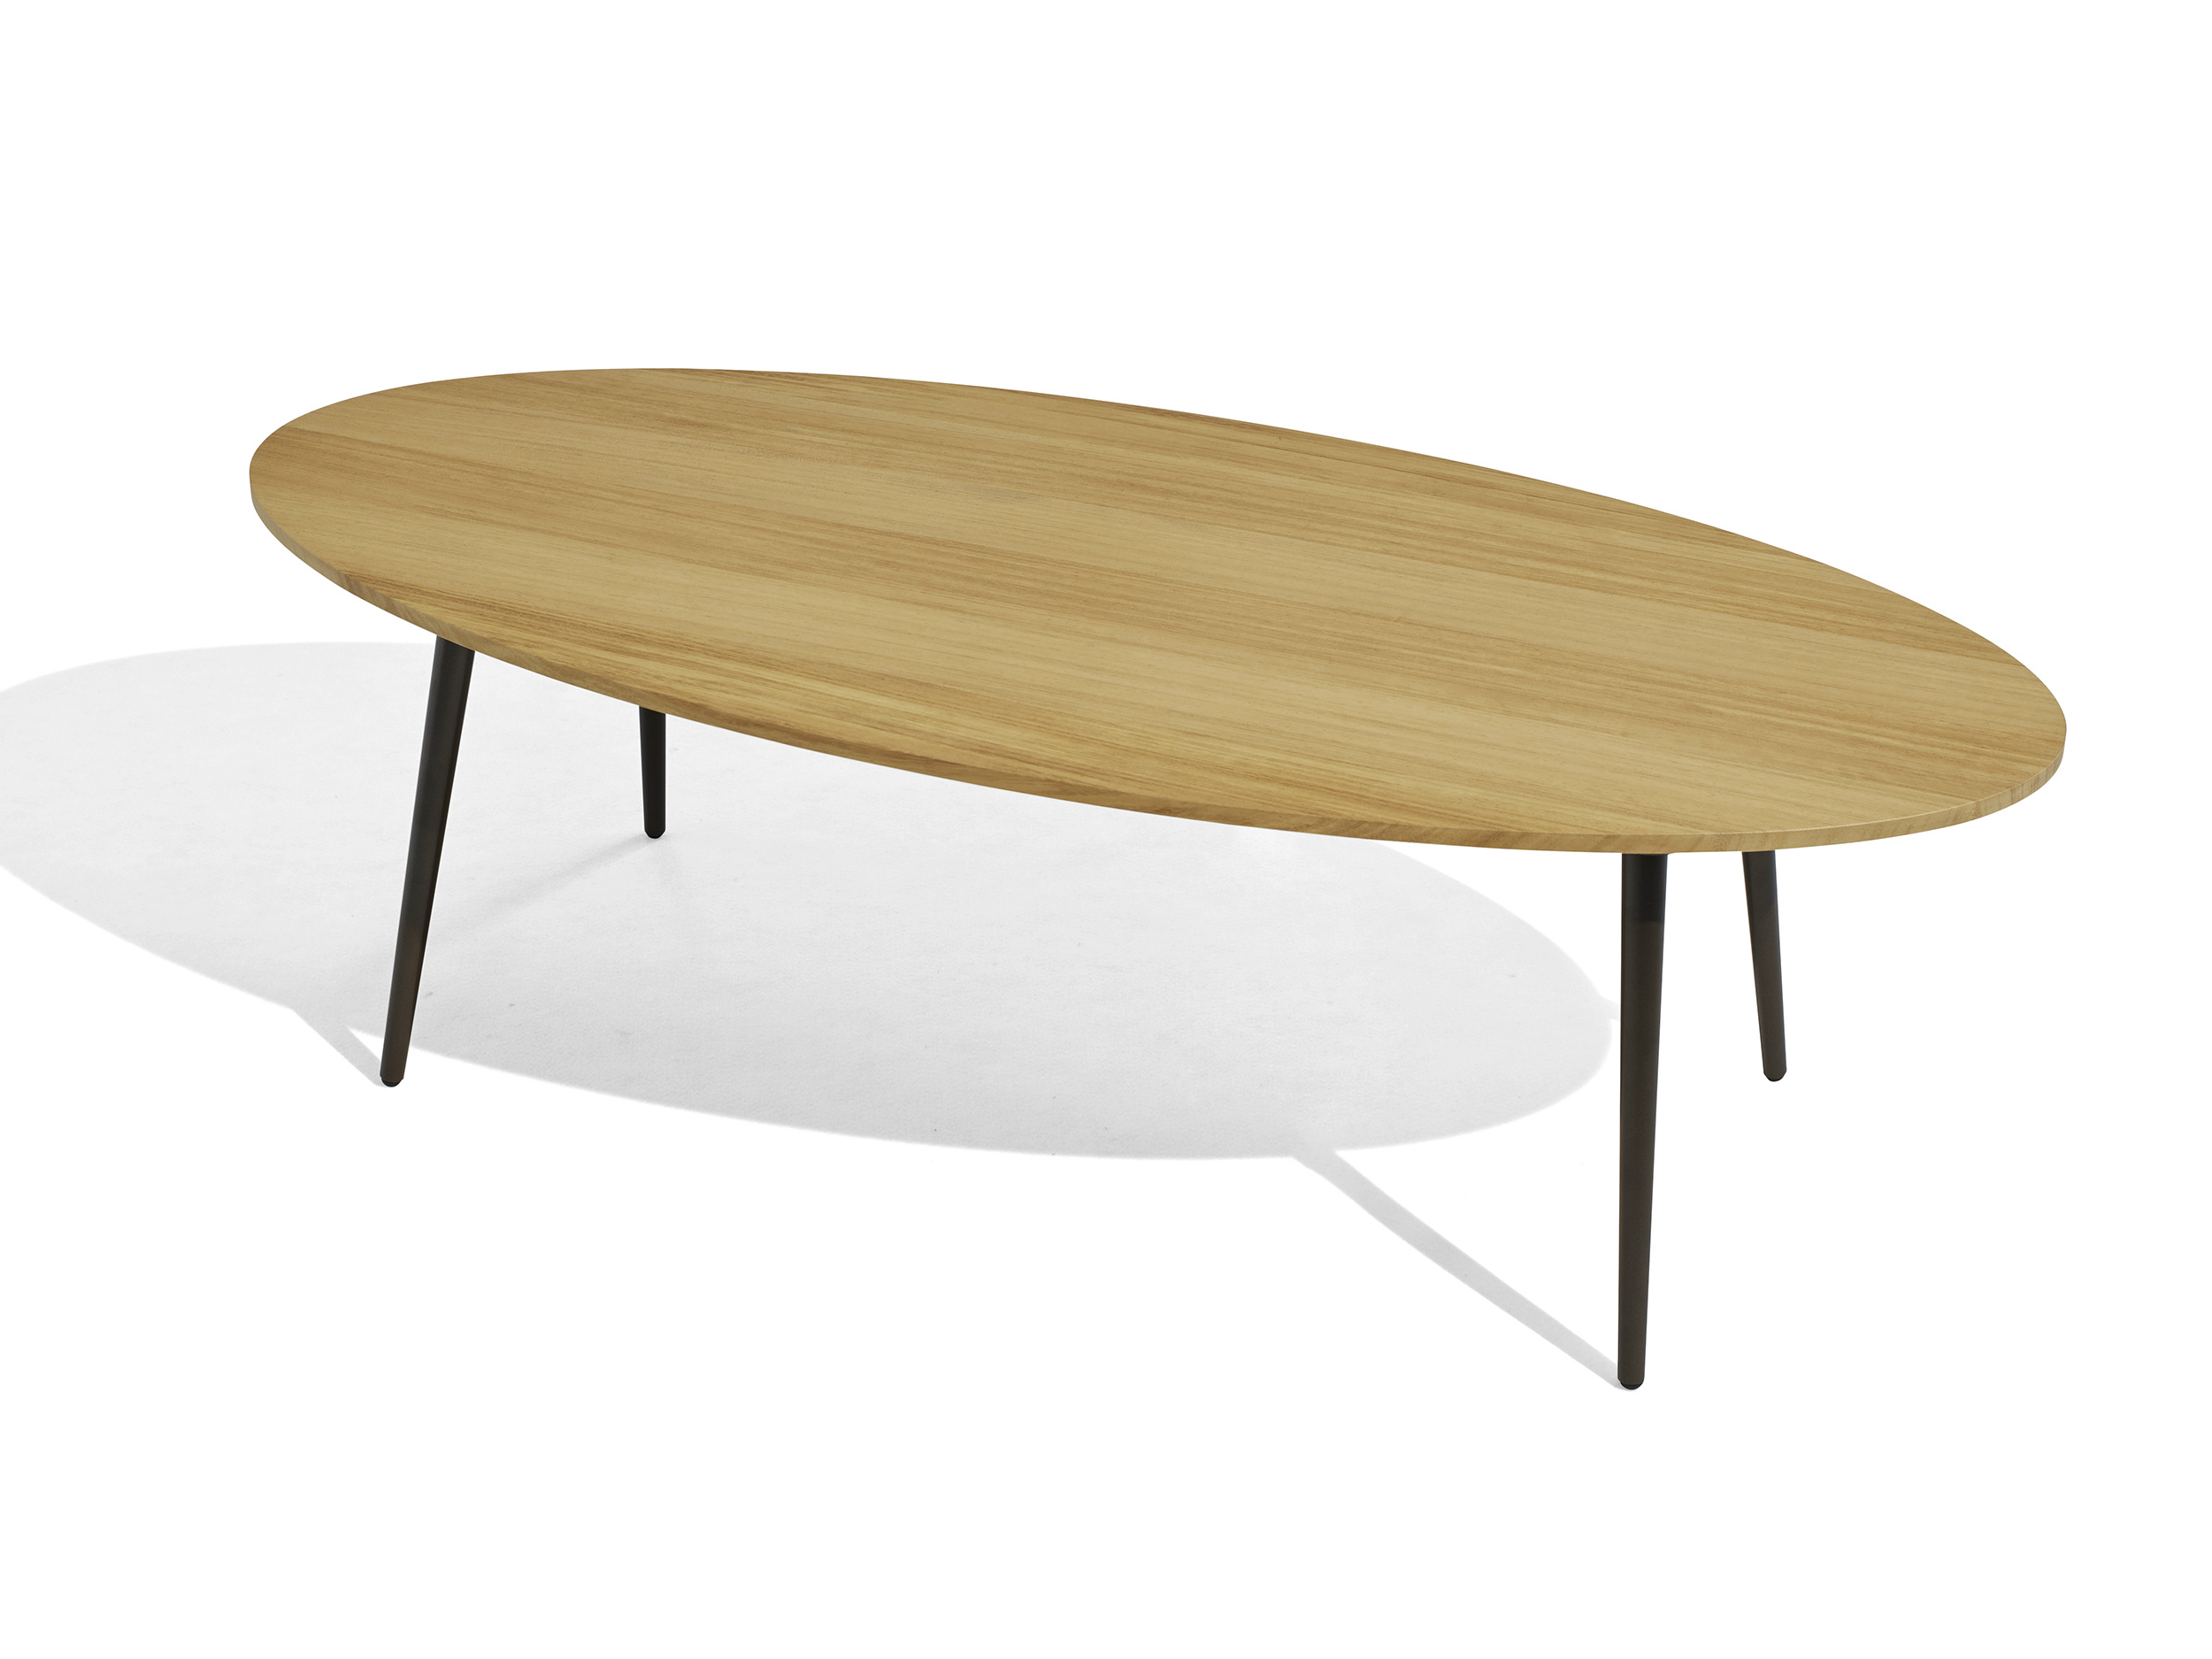 Low Oval Iroko Garden Side Table Vint Vint Collection By Bivaq Design Andr S Bluth